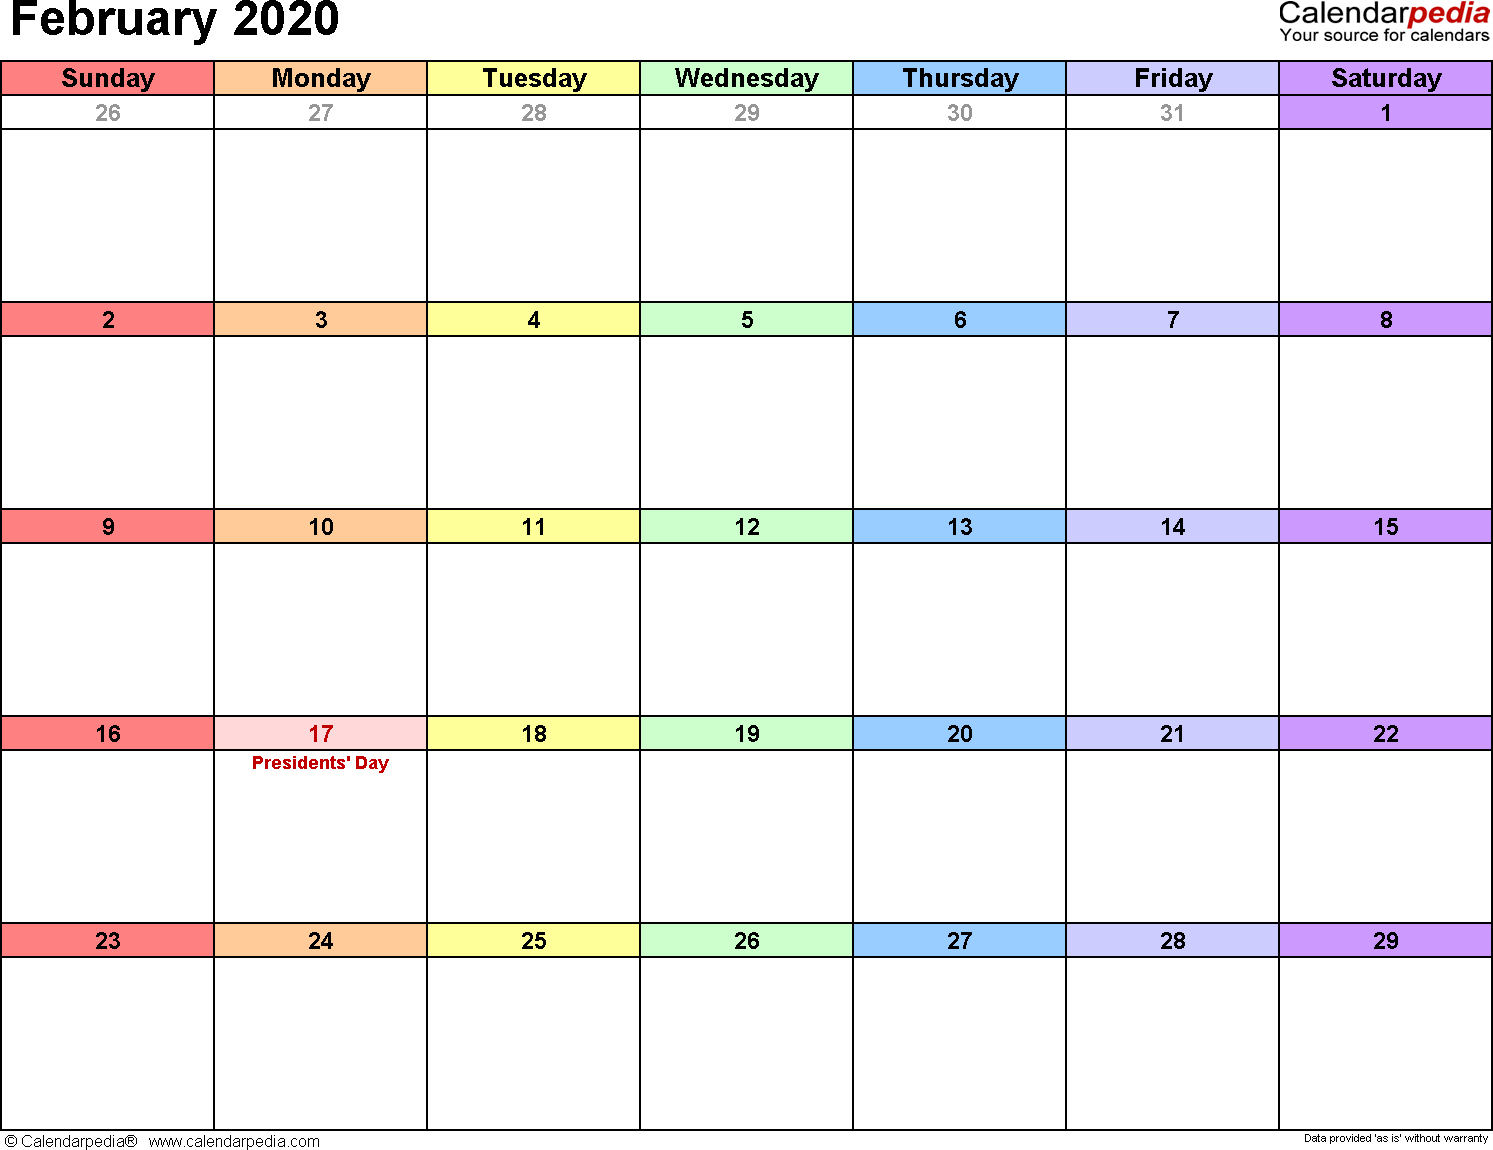 February Calendar For 2020 February 2020 Calendars for Word, Excel & PDF